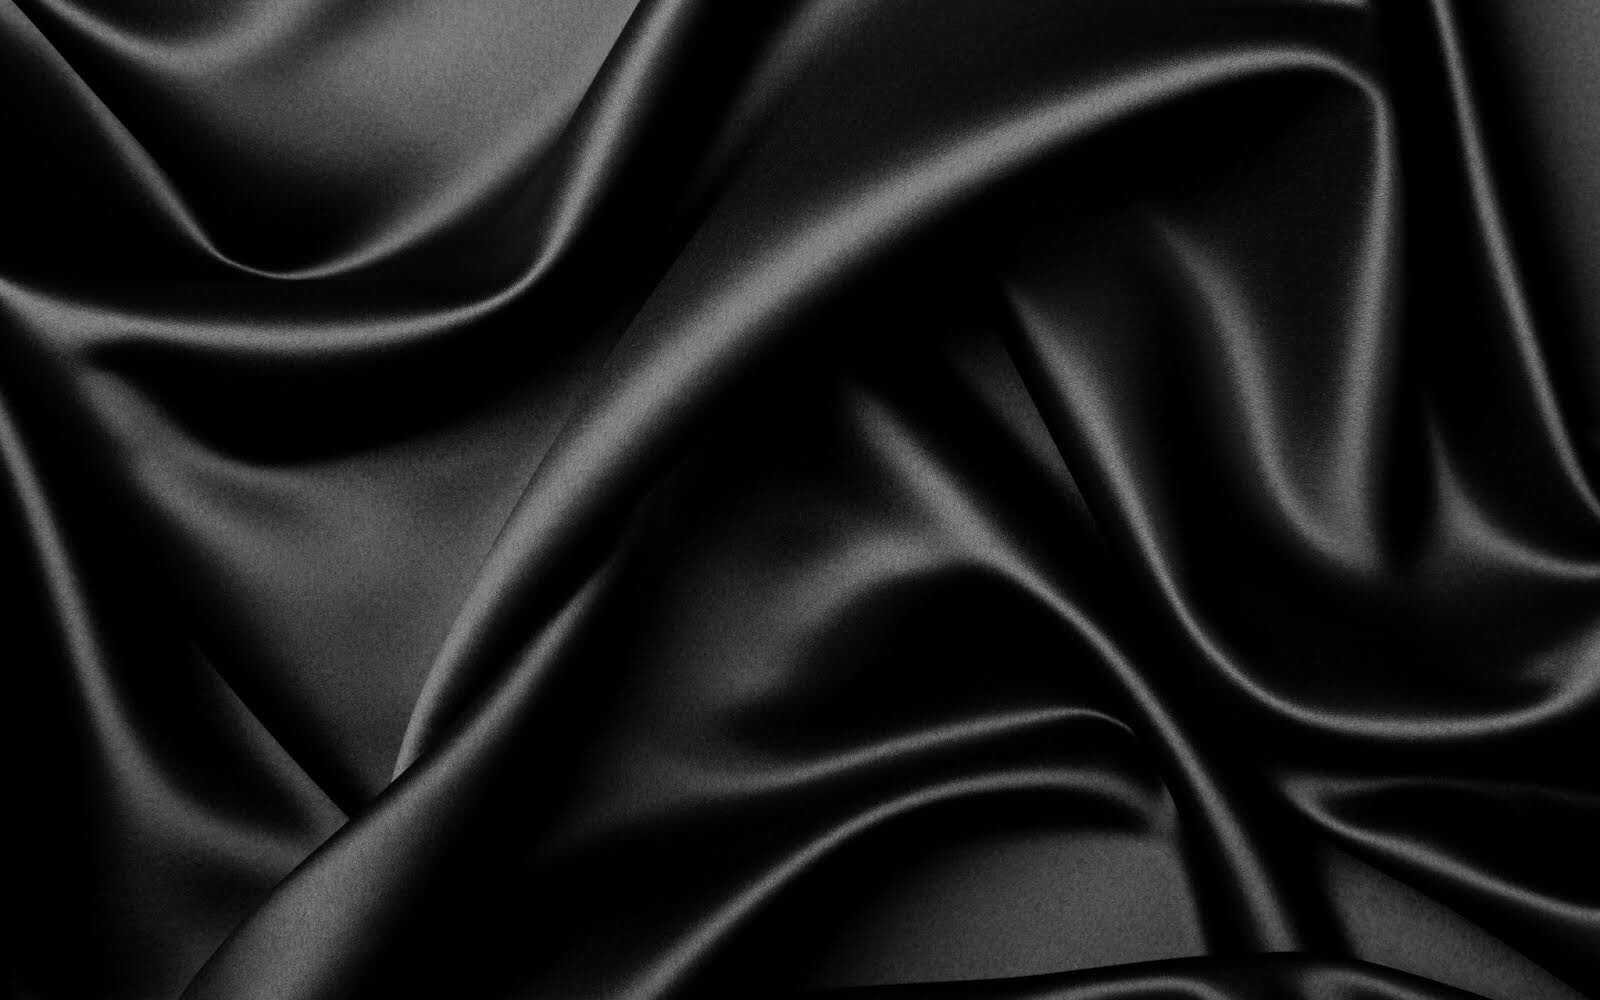 Pin By Alyssia On Thtr 230 Gp1 Black Textured Wallpaper Black Wallpaper Abstract